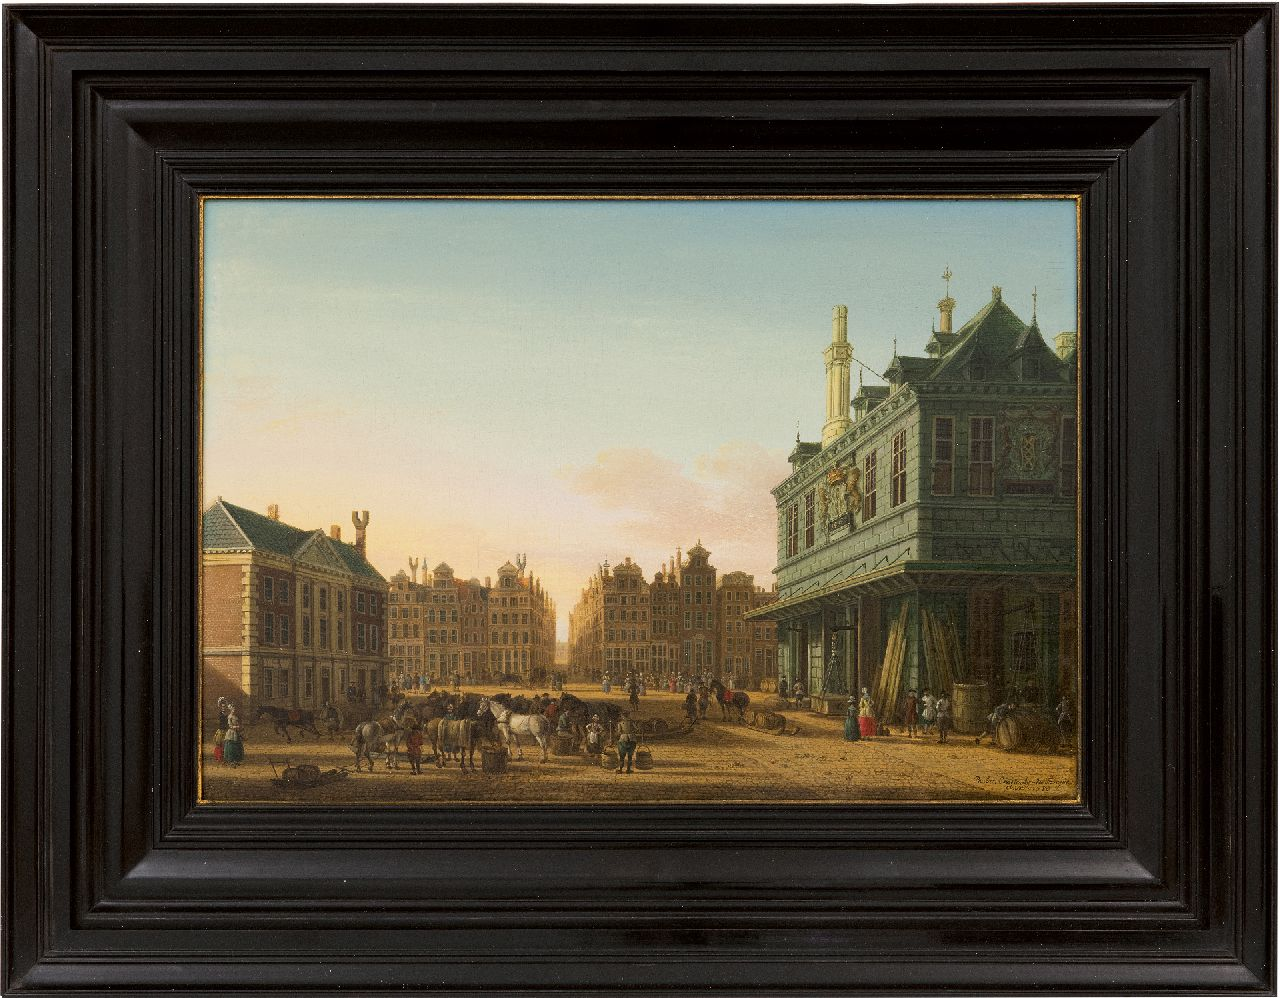 Fargue P.C. la | Paulus Constantijn la Fargue | Paintings offered for sale | The Dam square in Amsterdam with the Waag and the Beurssteeg in the distance, oil on panel 31.3 x 45.8 cm, signed l.r. and dated 1780